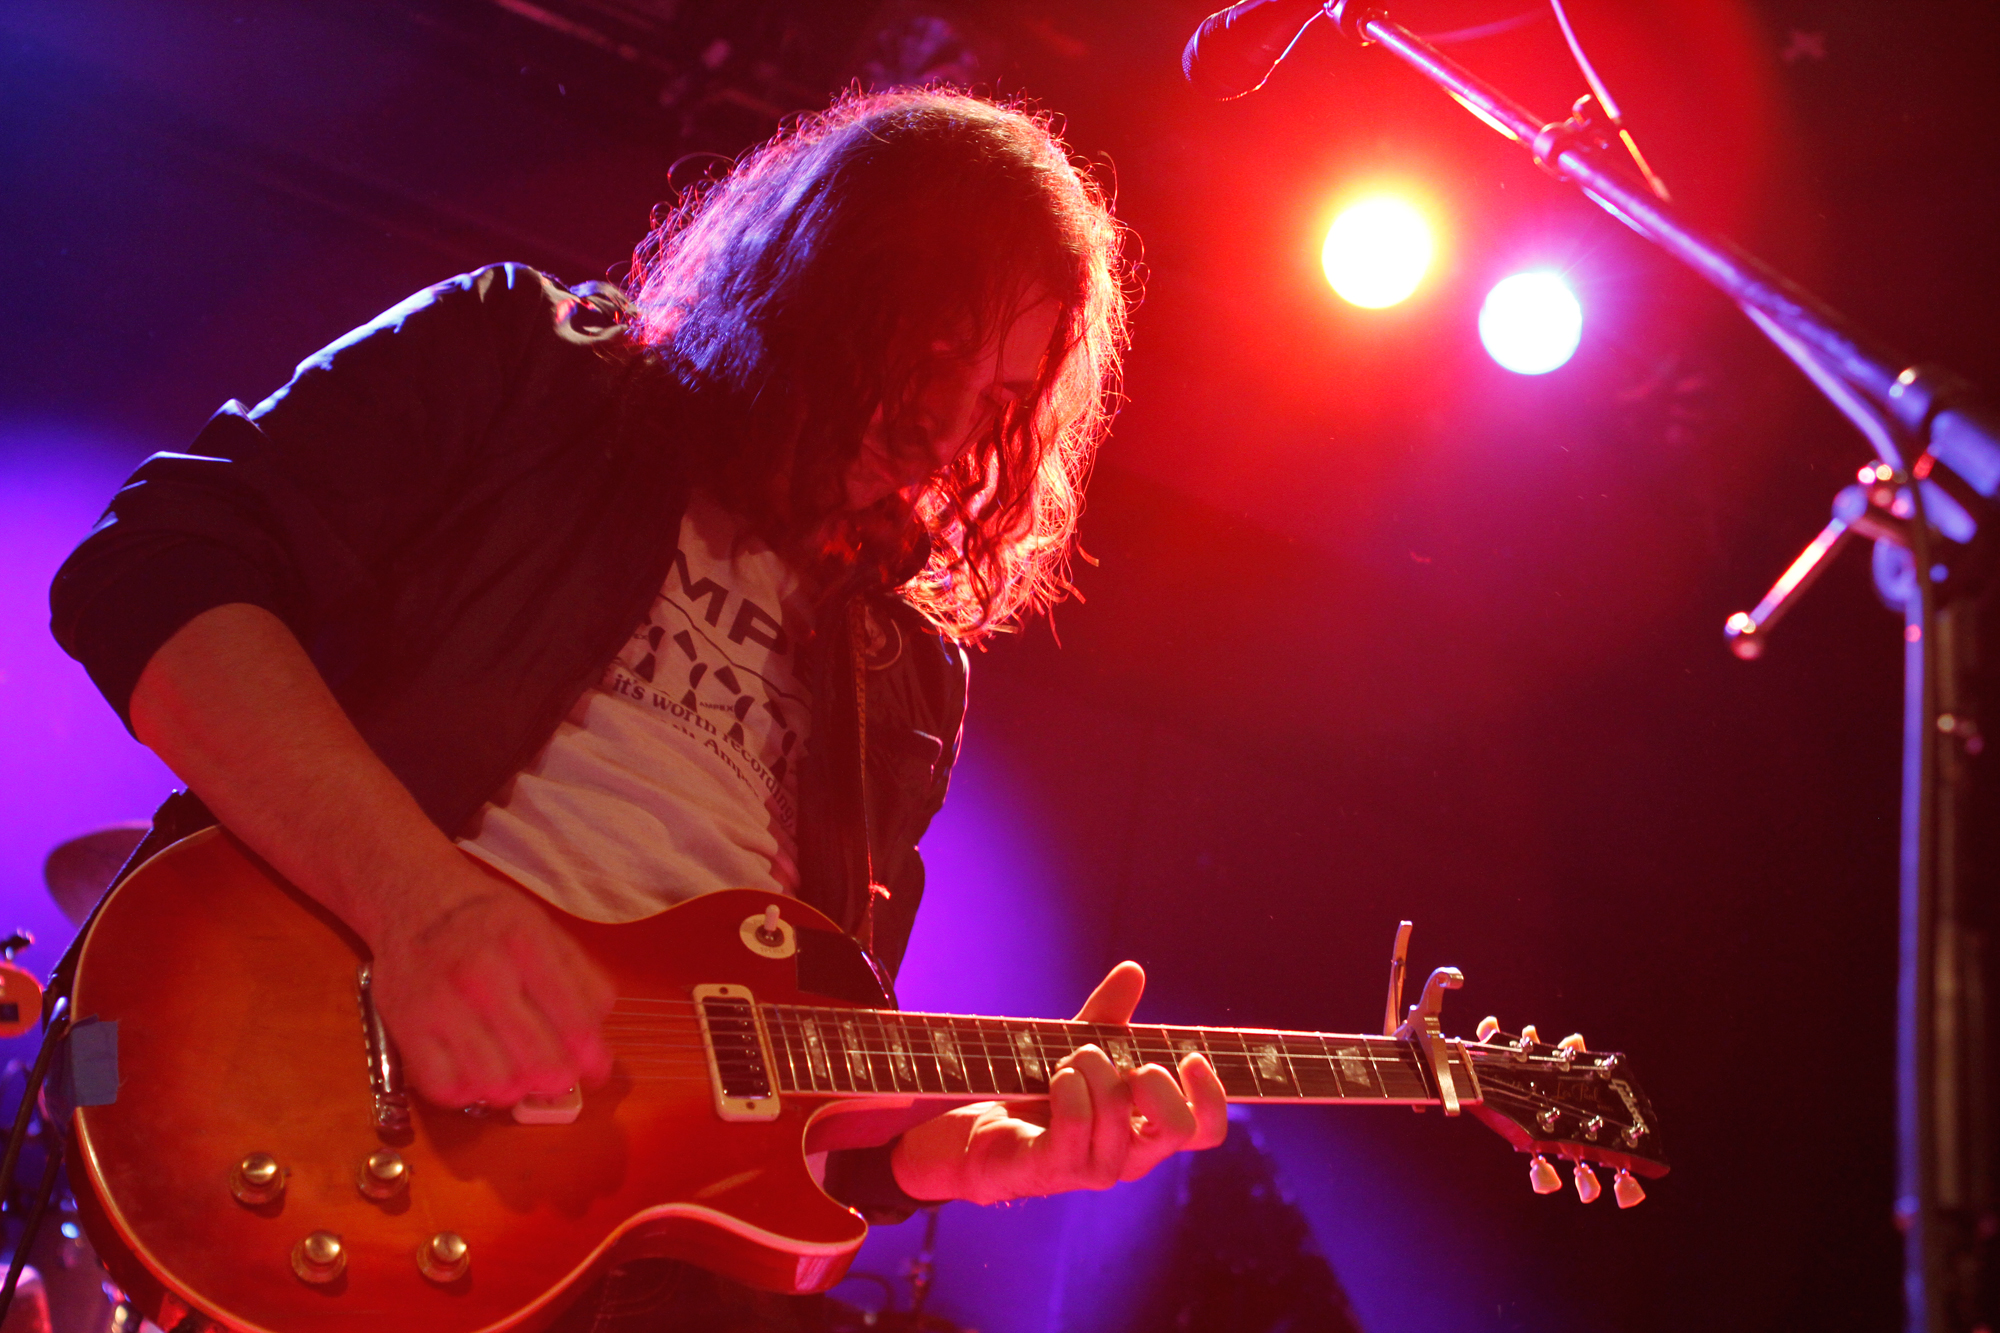 The War On Drugs plays at Bowery Ballroom in New York, NY on March 19, 2014. (© Michael Katzif – Do not use or republish without prior consent.)